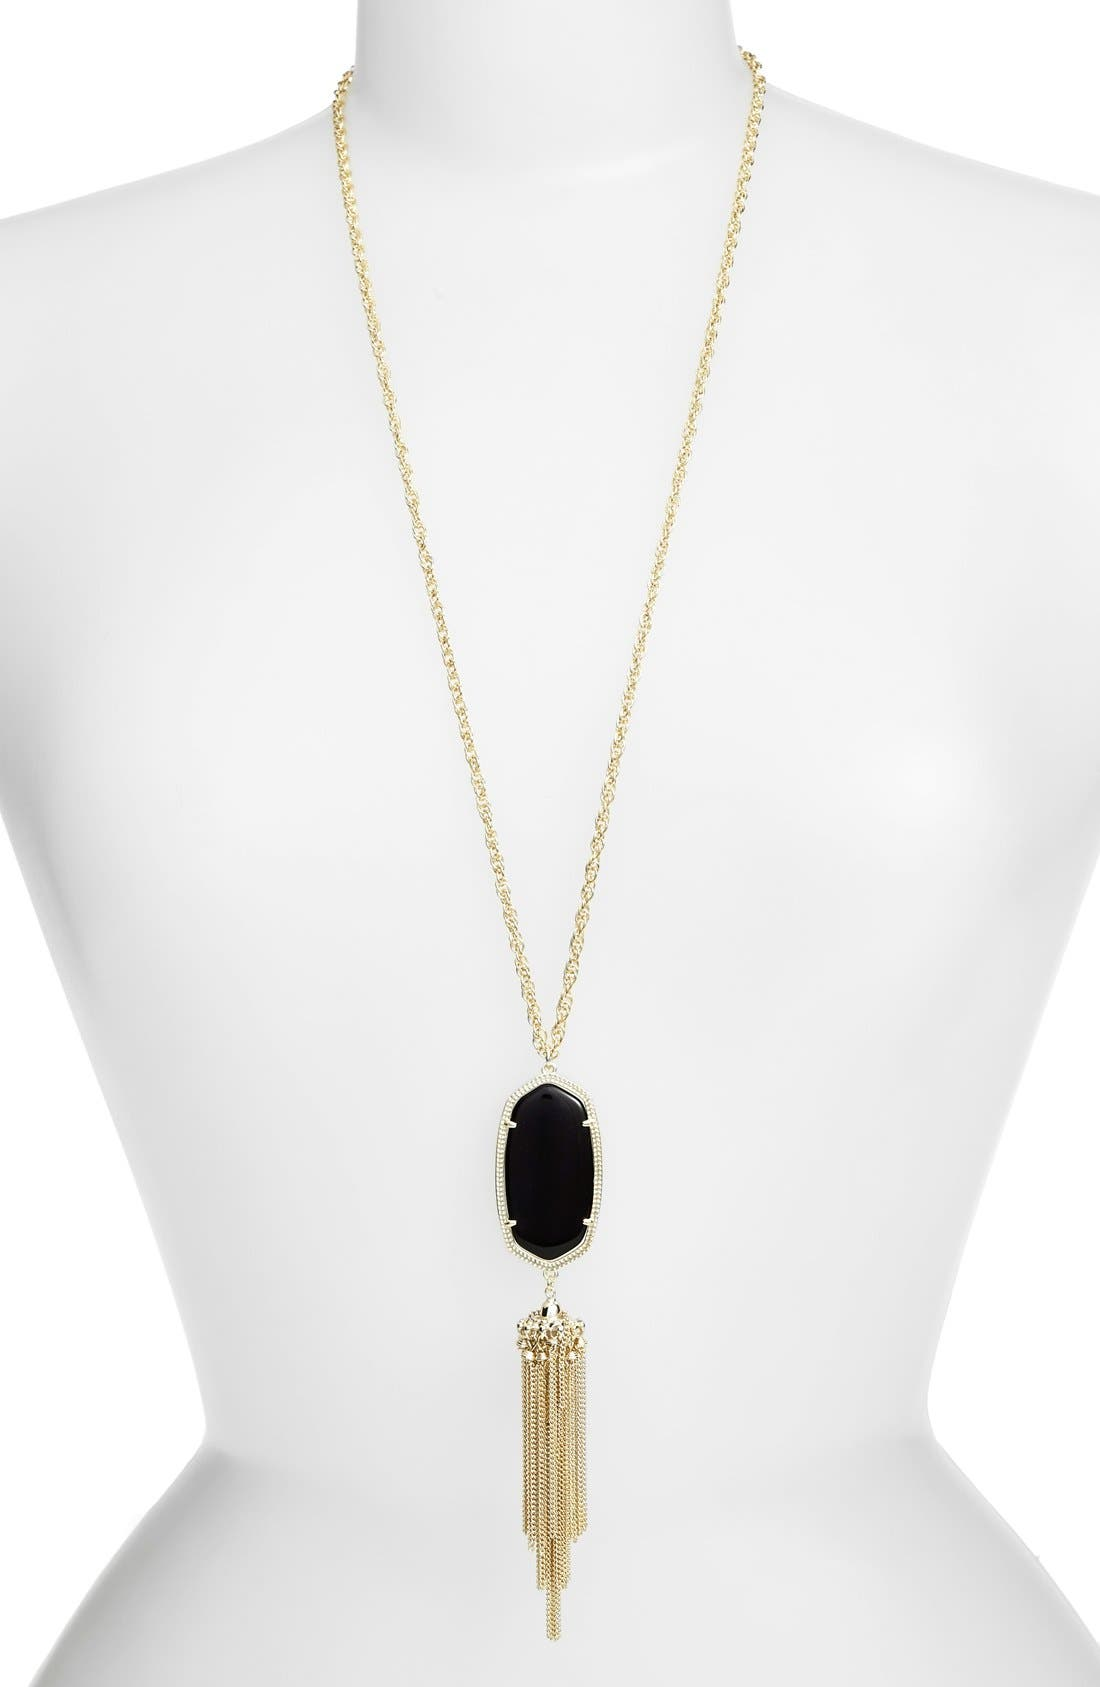 KENDRA SCOTT, Rayne Stone Tassel Pendant Necklace, Main thumbnail 1, color, 001